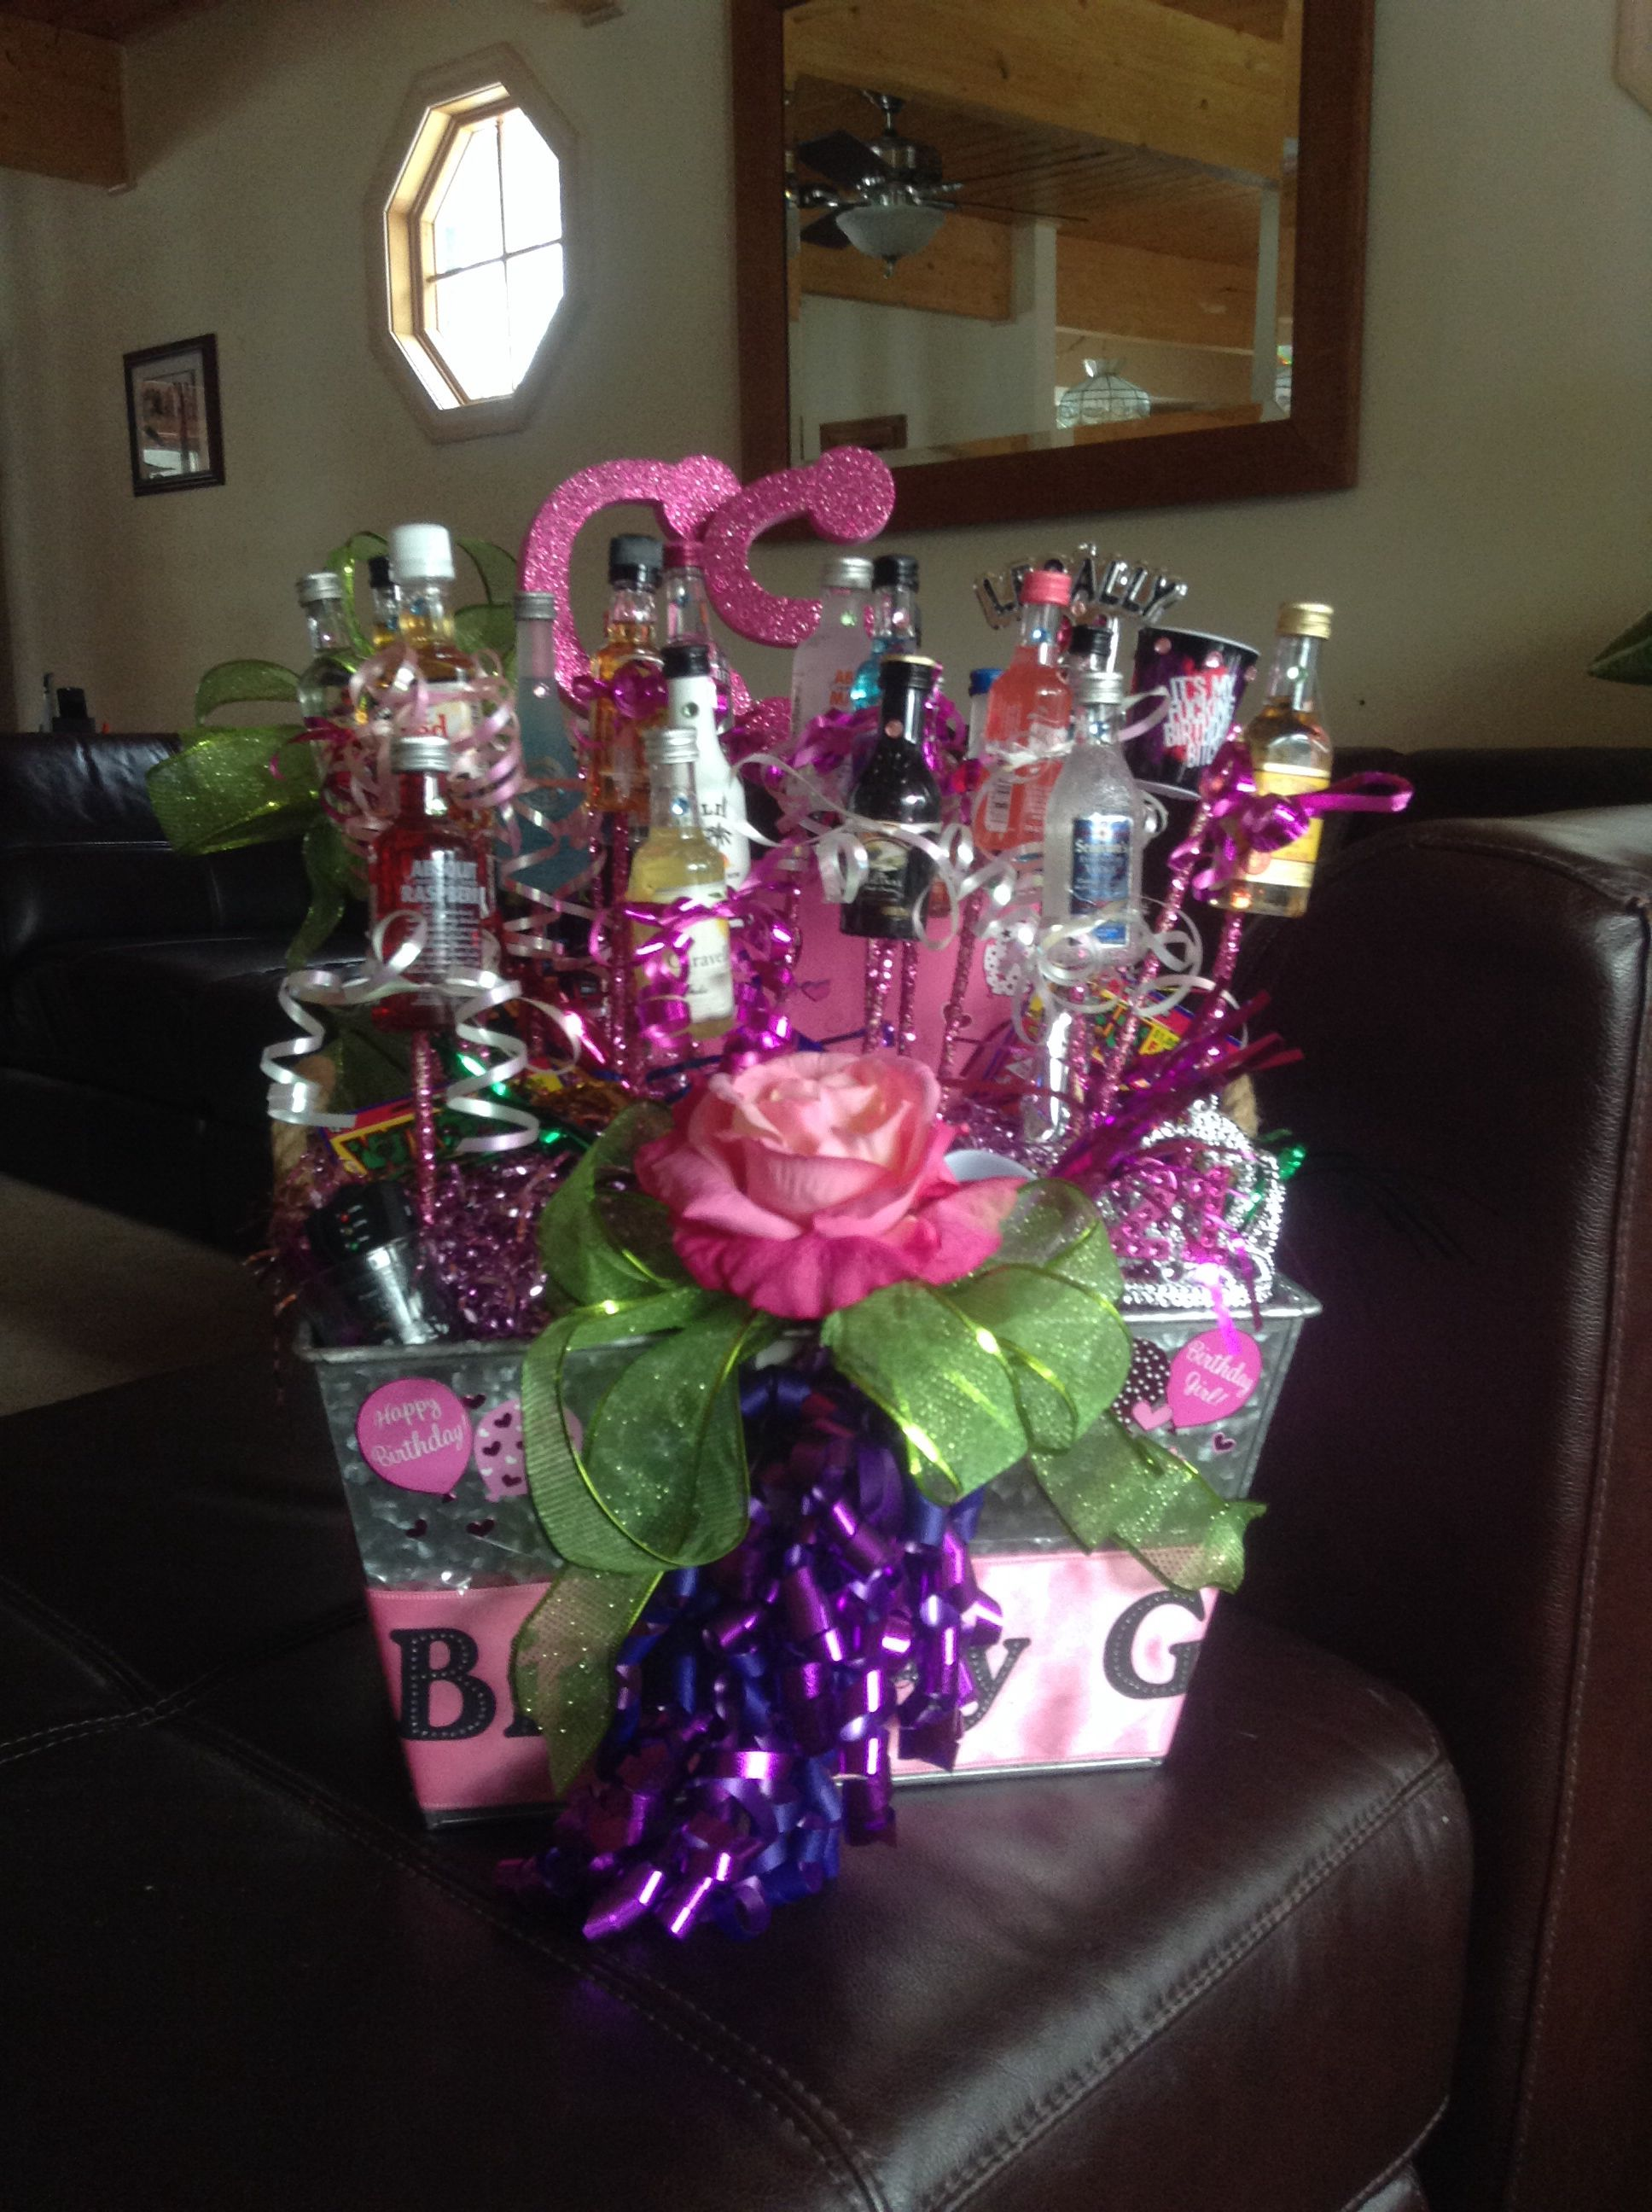 A gift basket for my daughters 21st birthday birthday